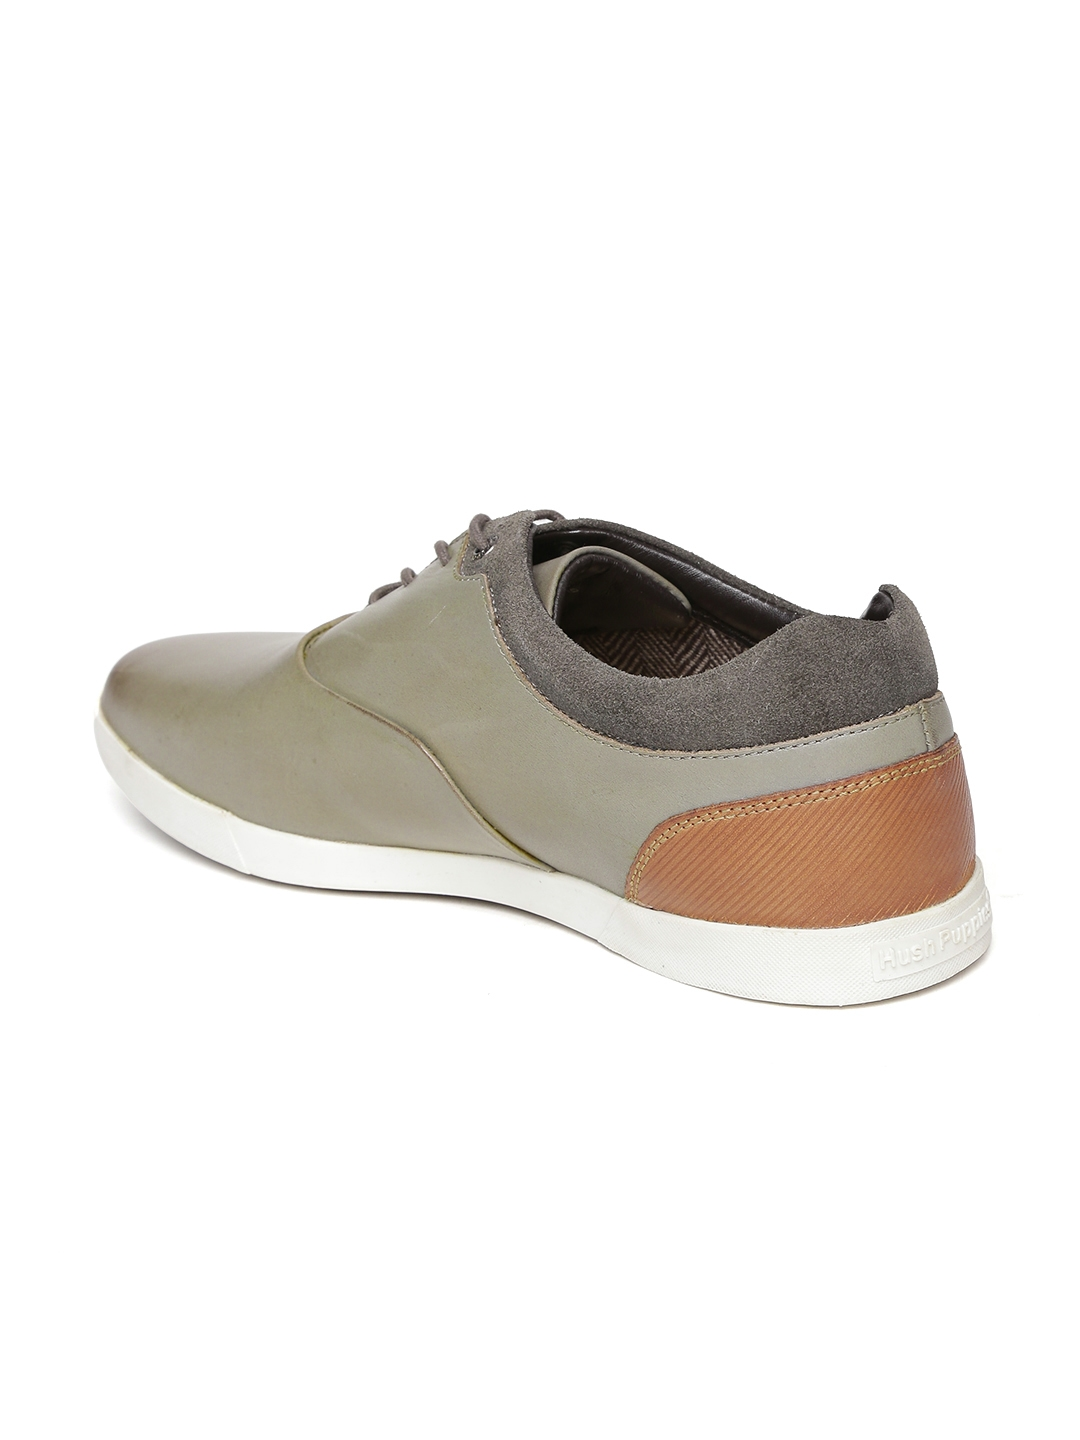 0f1fc87ed1ab1 Buy Hush Puppies Men Grey Leather Sneakers - Casual Shoes for Men ...